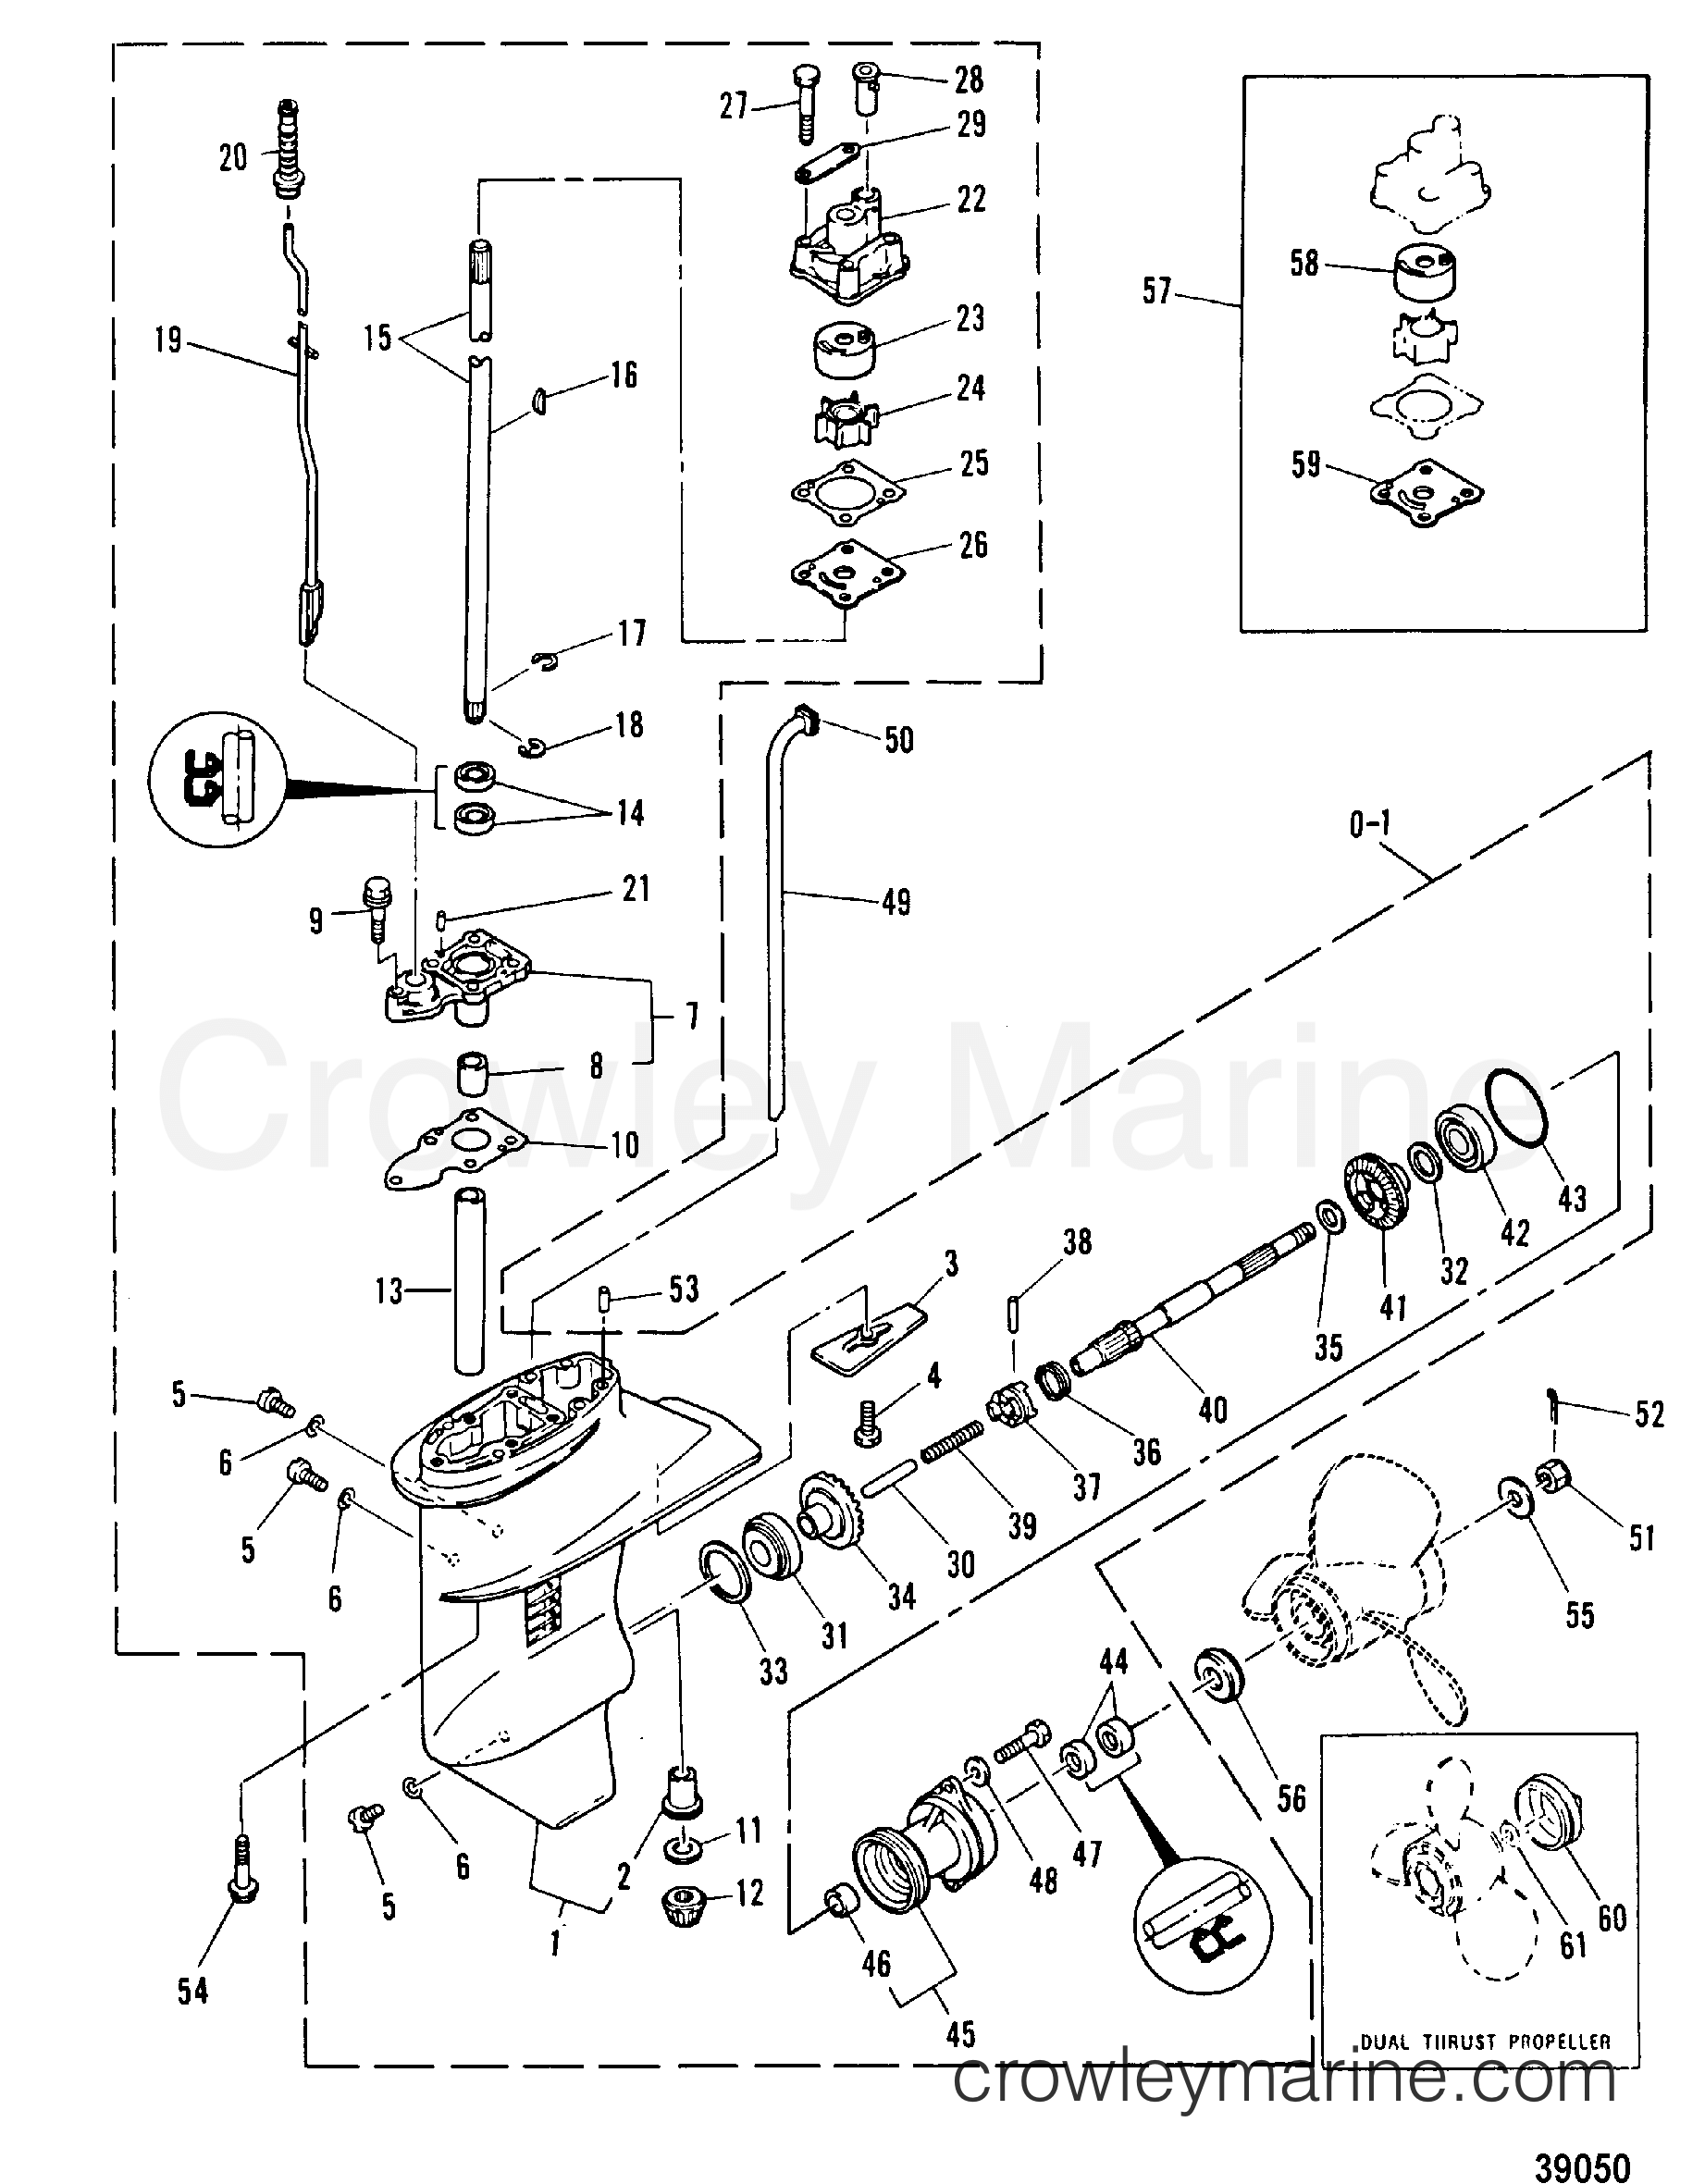 1978 Mariner Outboard 8 [ML] - 7008228 - GEARHOUSING ASSEMBLY section